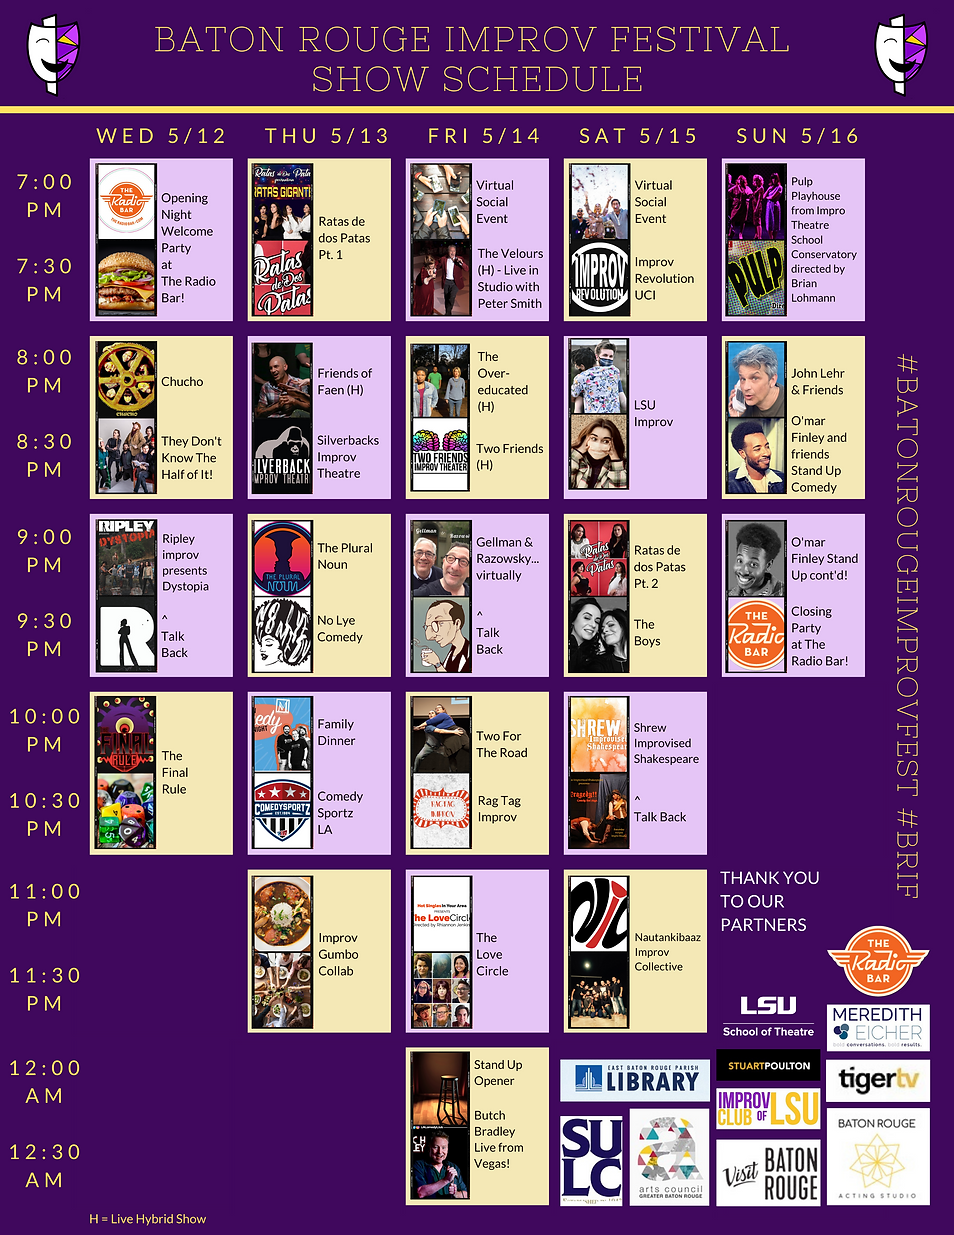 5-4 BRIF Show Schedule Image.png